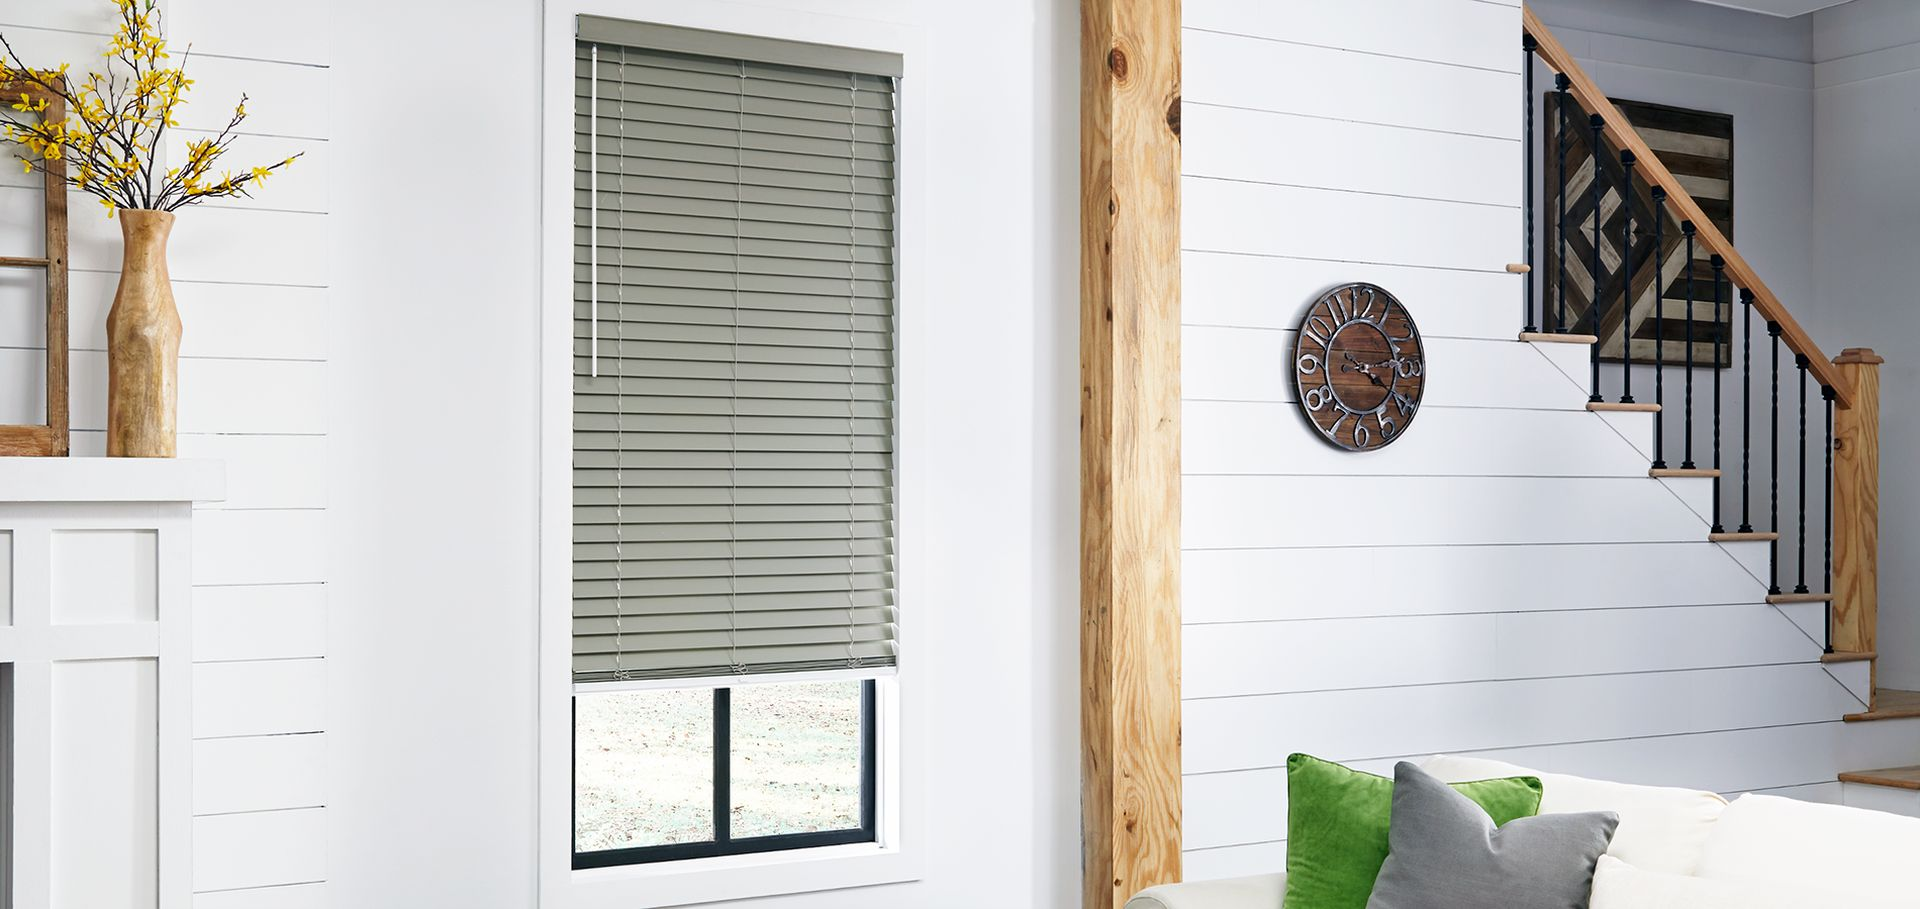 Add A Touch Of Glamor To Your Windows With The Right Valance